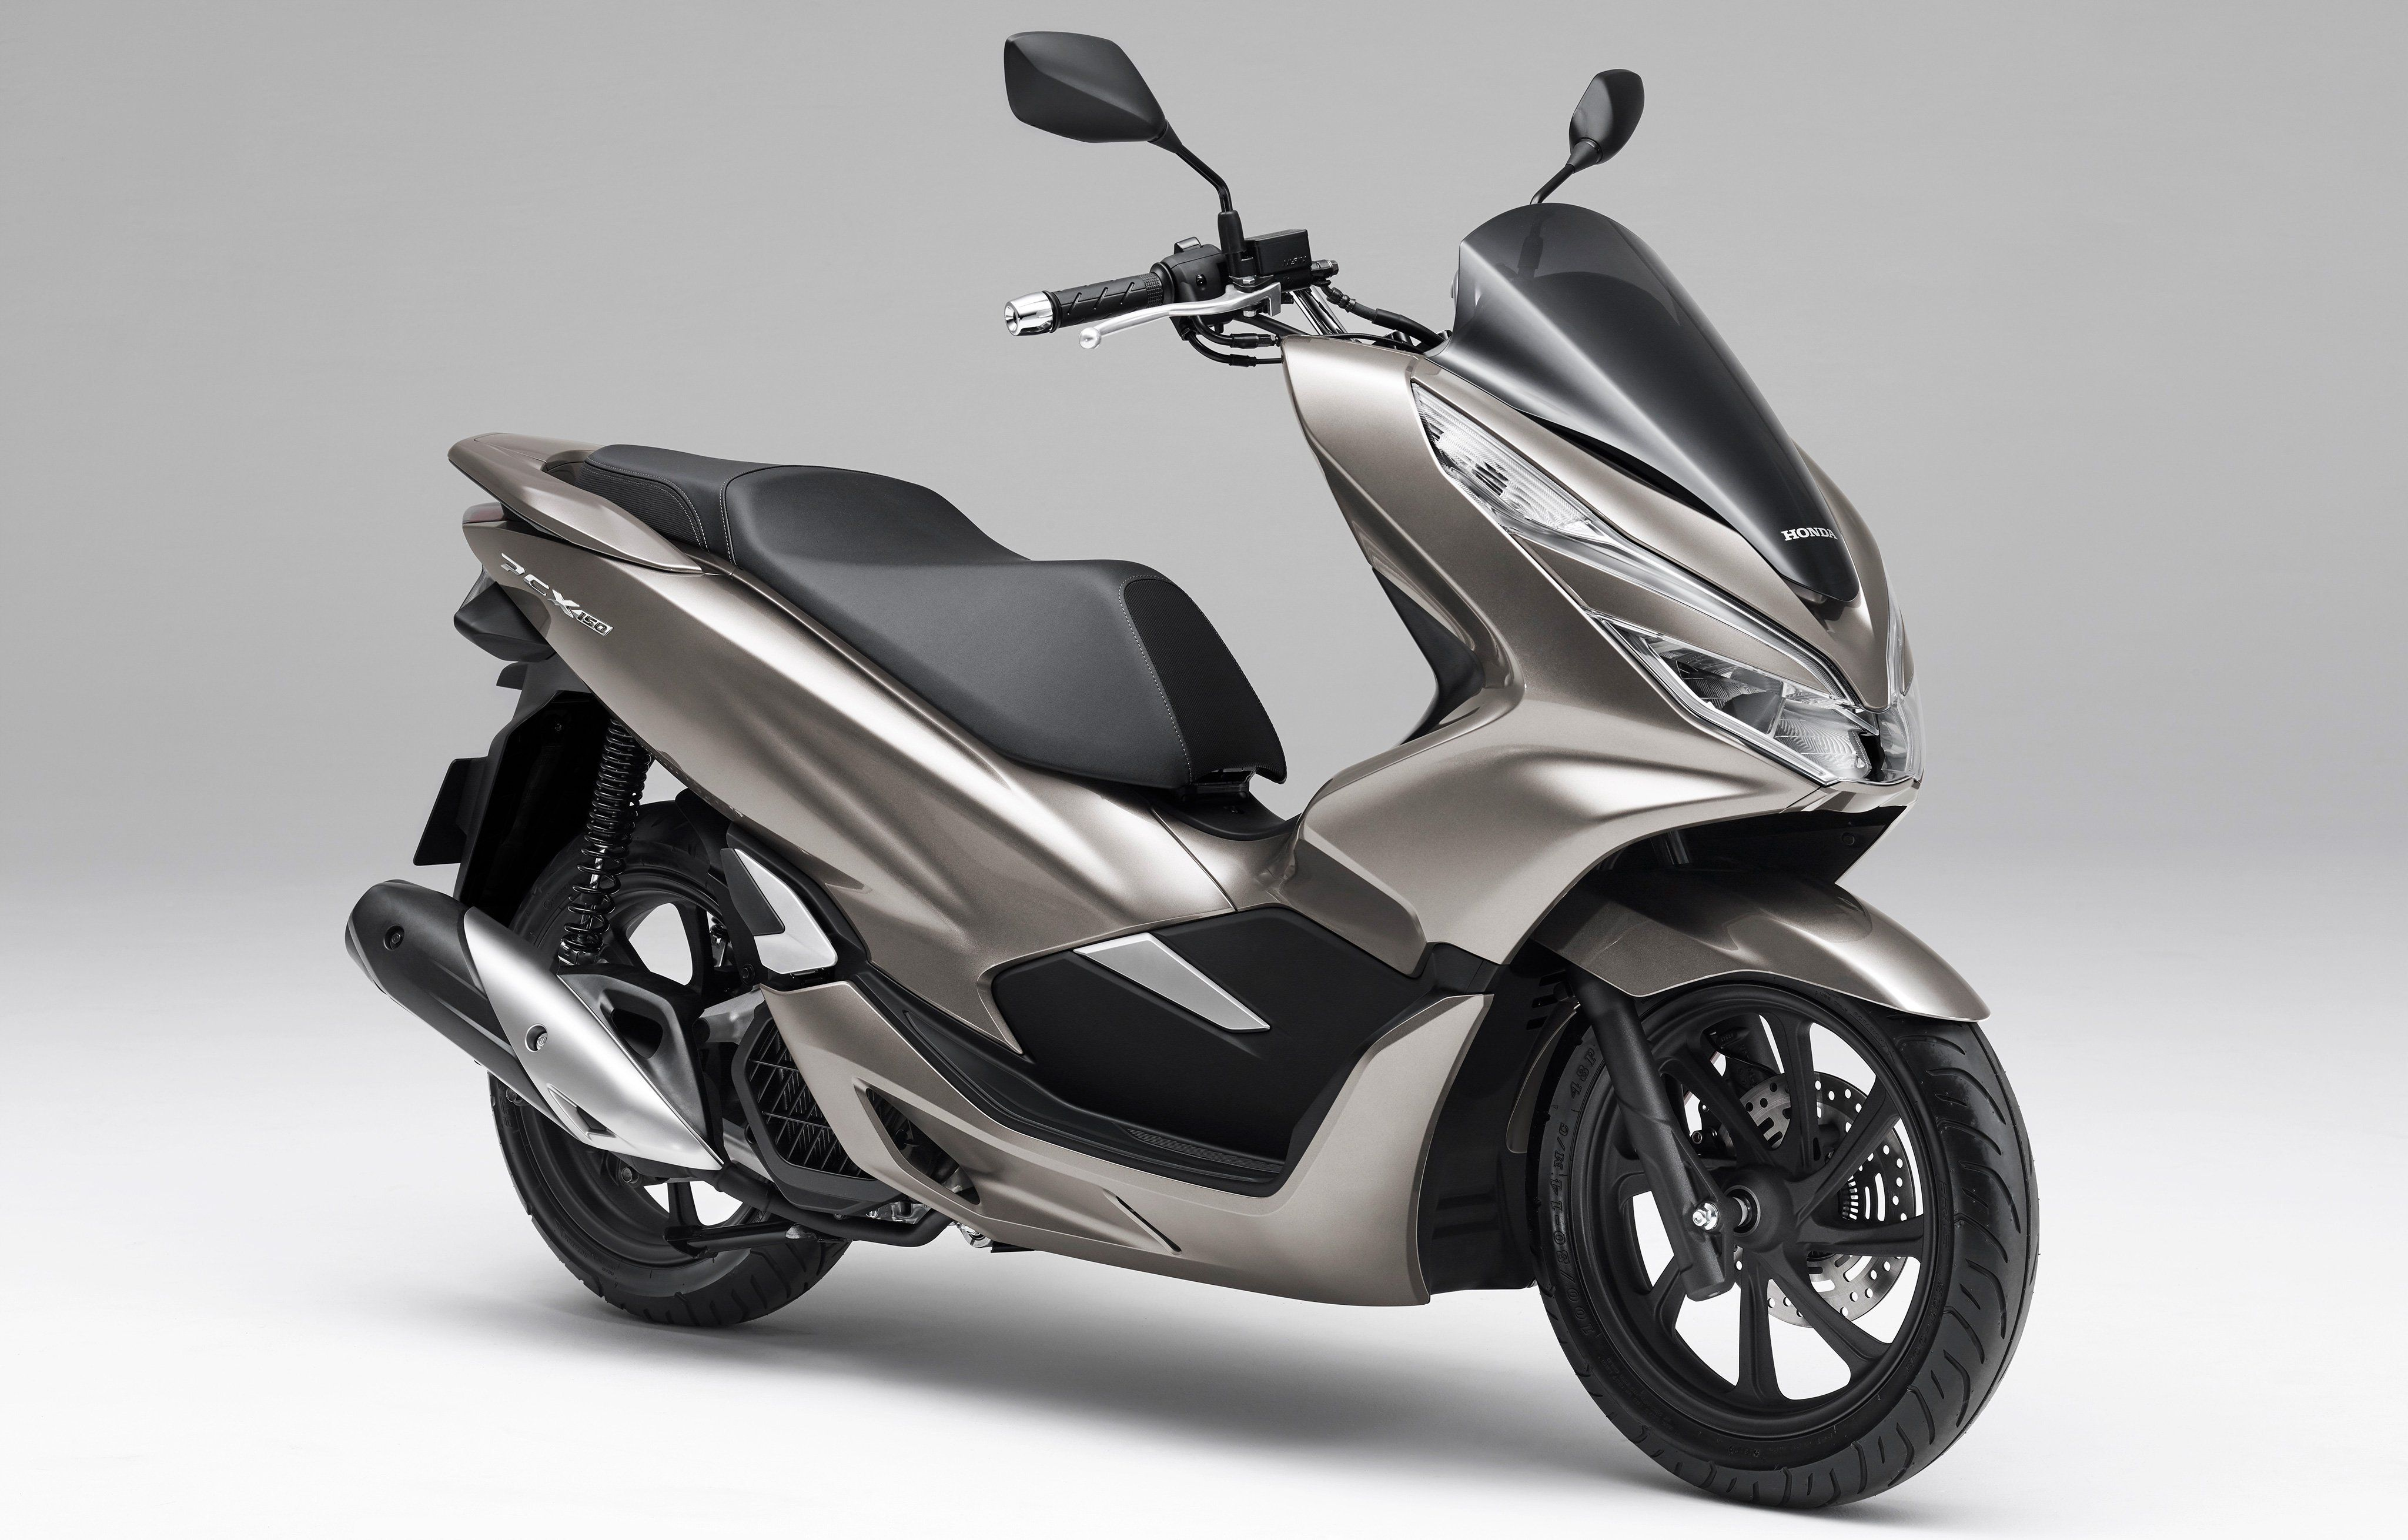 Honda Gave The Pcx 150 A Fresh New Update Top Speed Scooter Bike Honda Scooters Motor Scooters